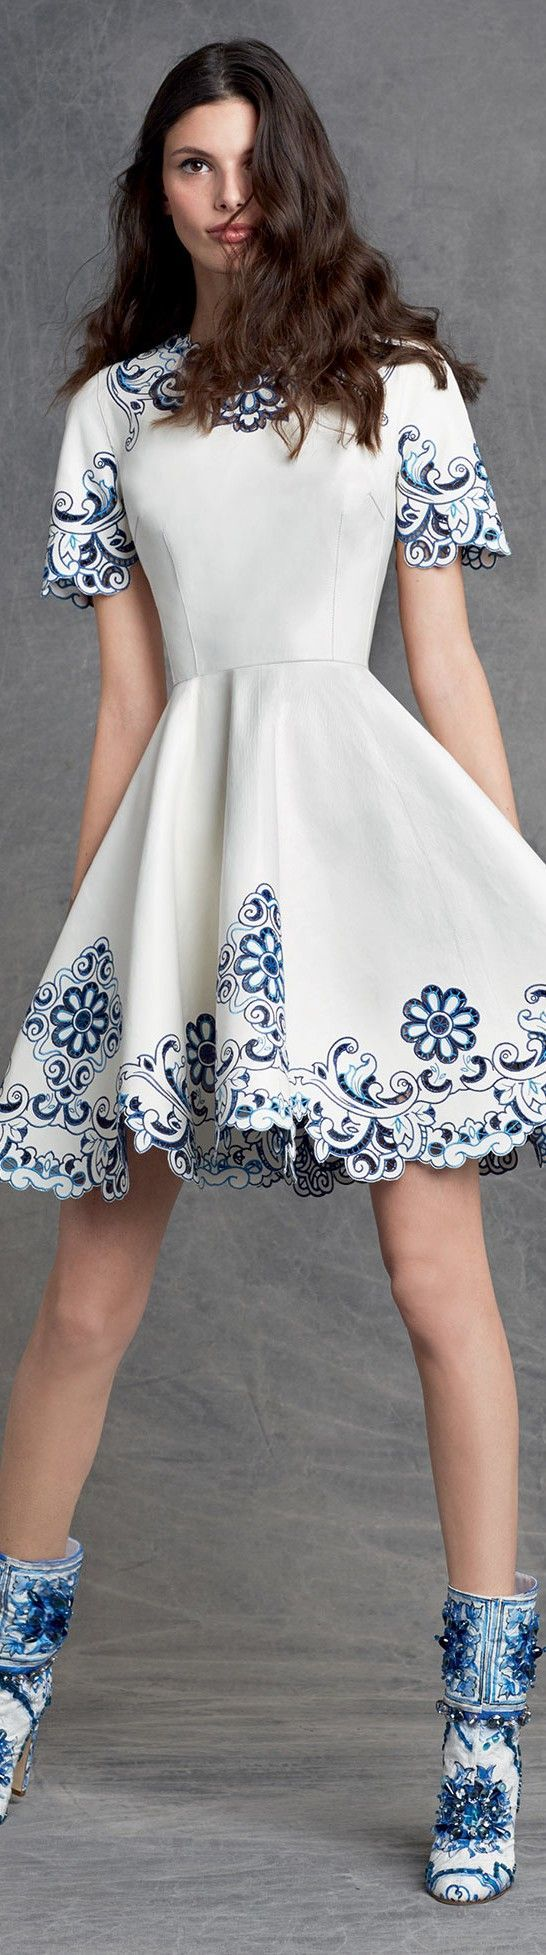 Dolce & Gabbana skater dress with detailed hems and matching boots.: